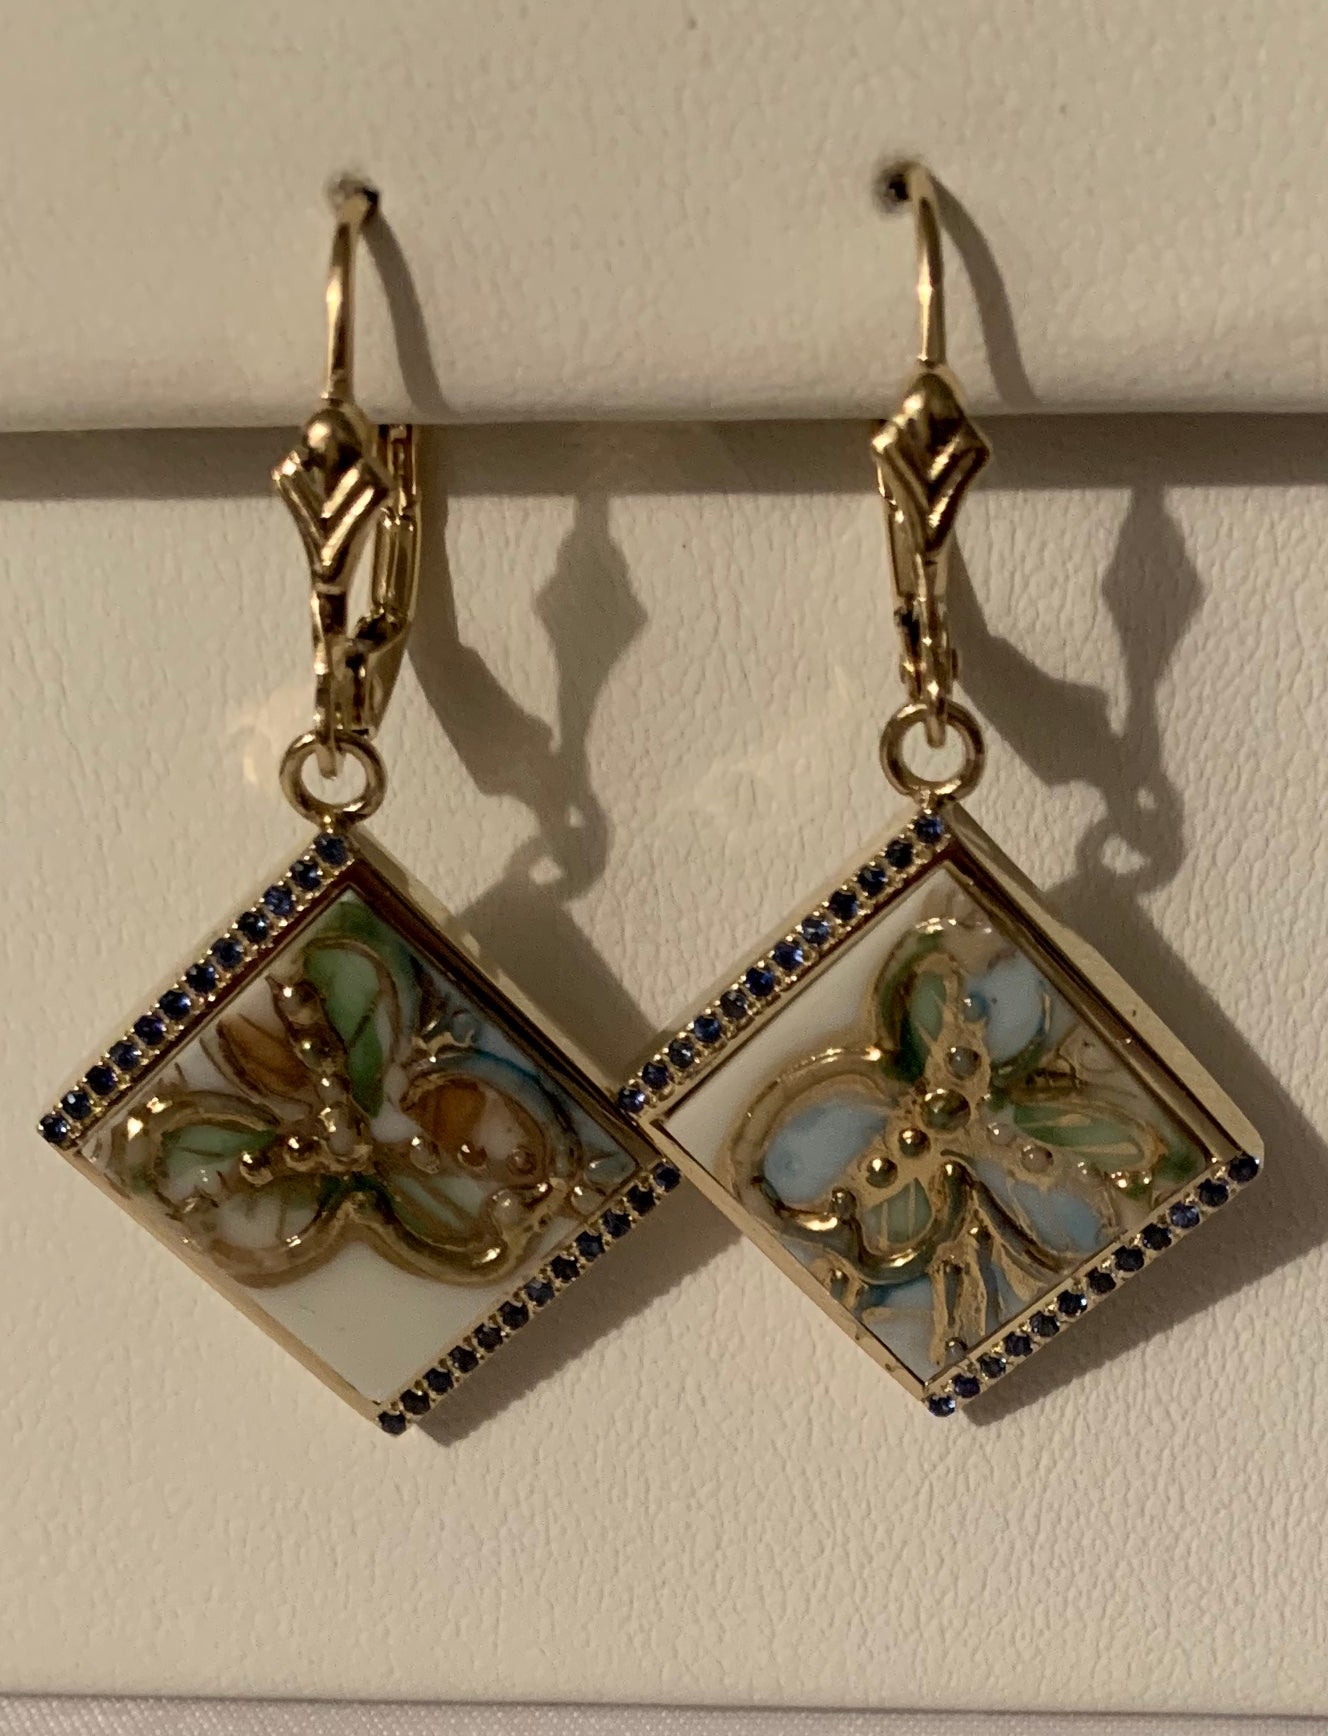 14K YG Earrings; Square Porcelain (Gold Flower)with Sapphires